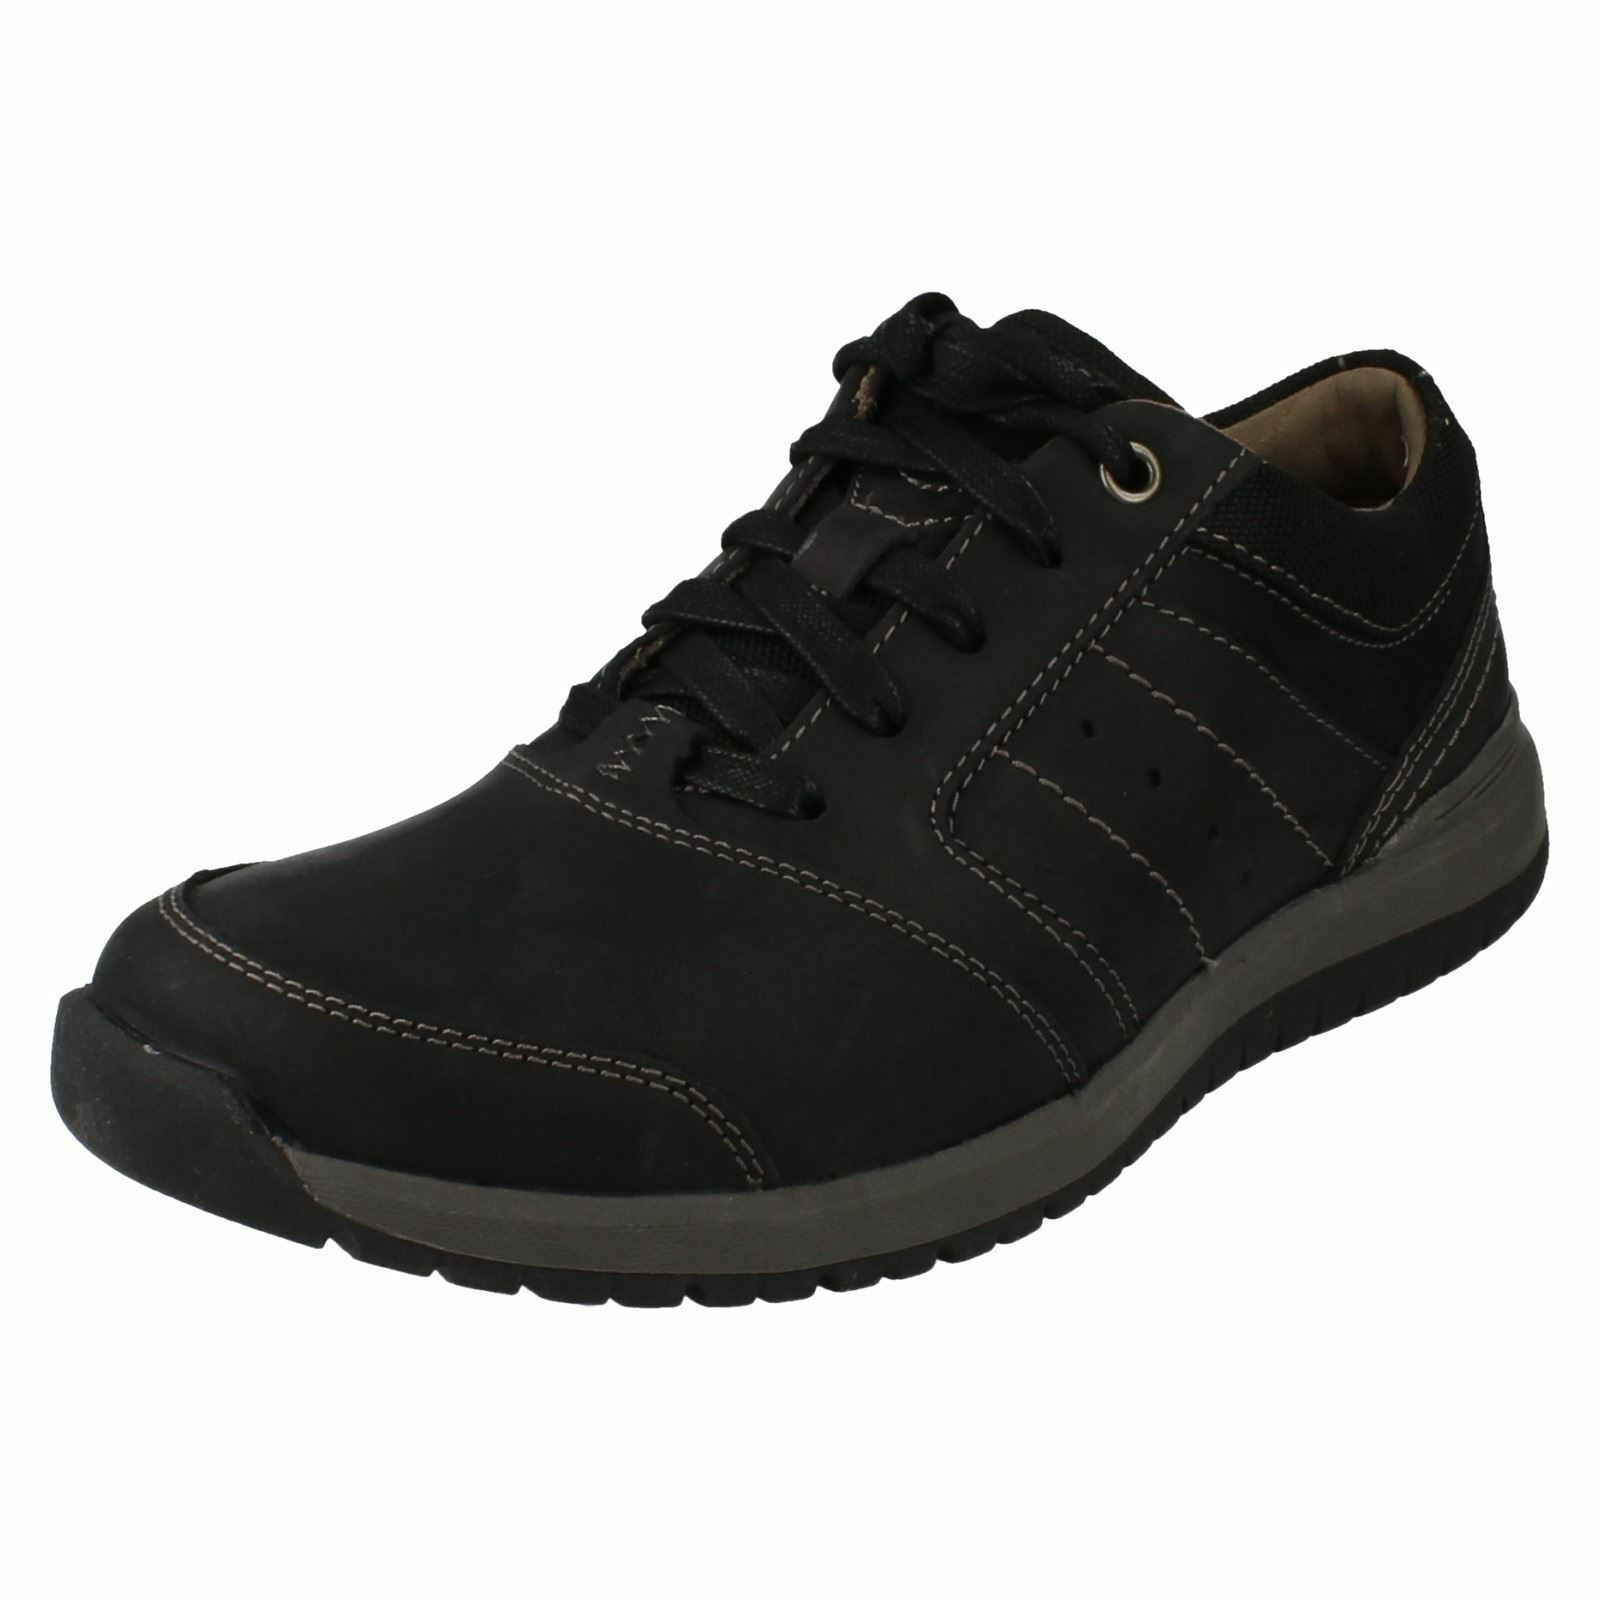 SALE Clarks 'Ryley Street' Men's Black Leather Lace Up Casual shoes G Fit